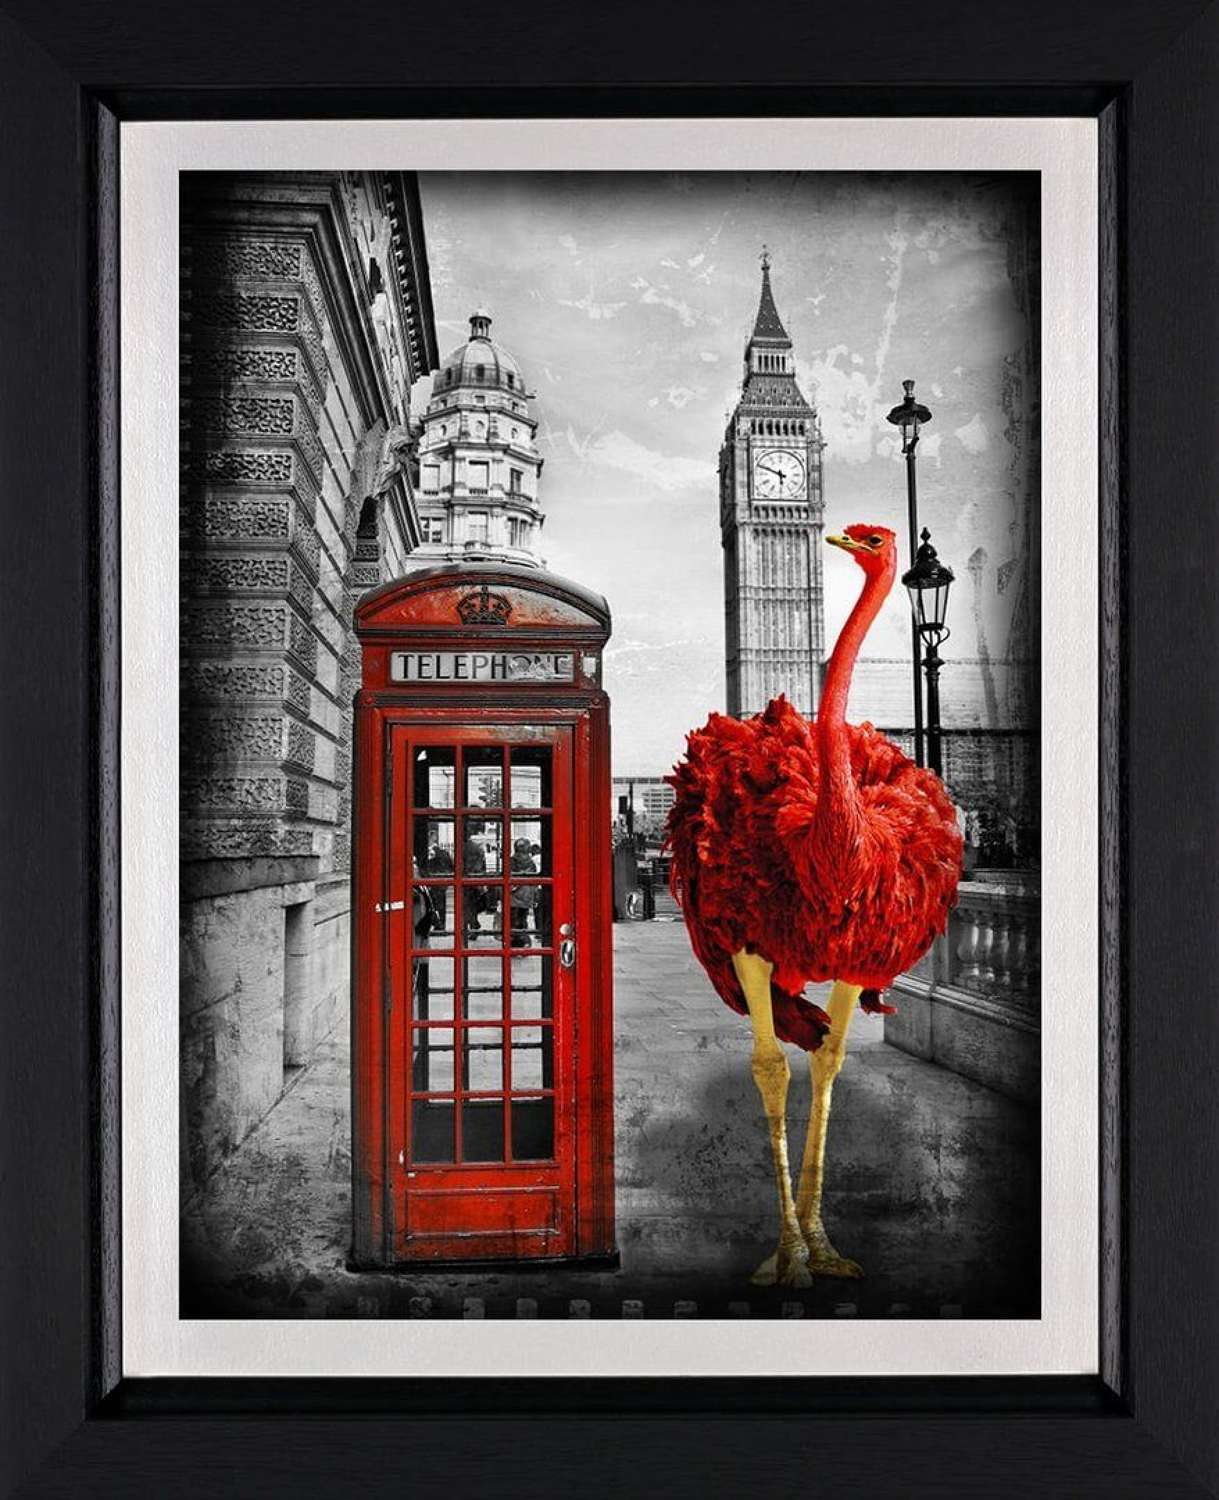 Looking for a Friend - Framed Art Print by Lars Tunebo